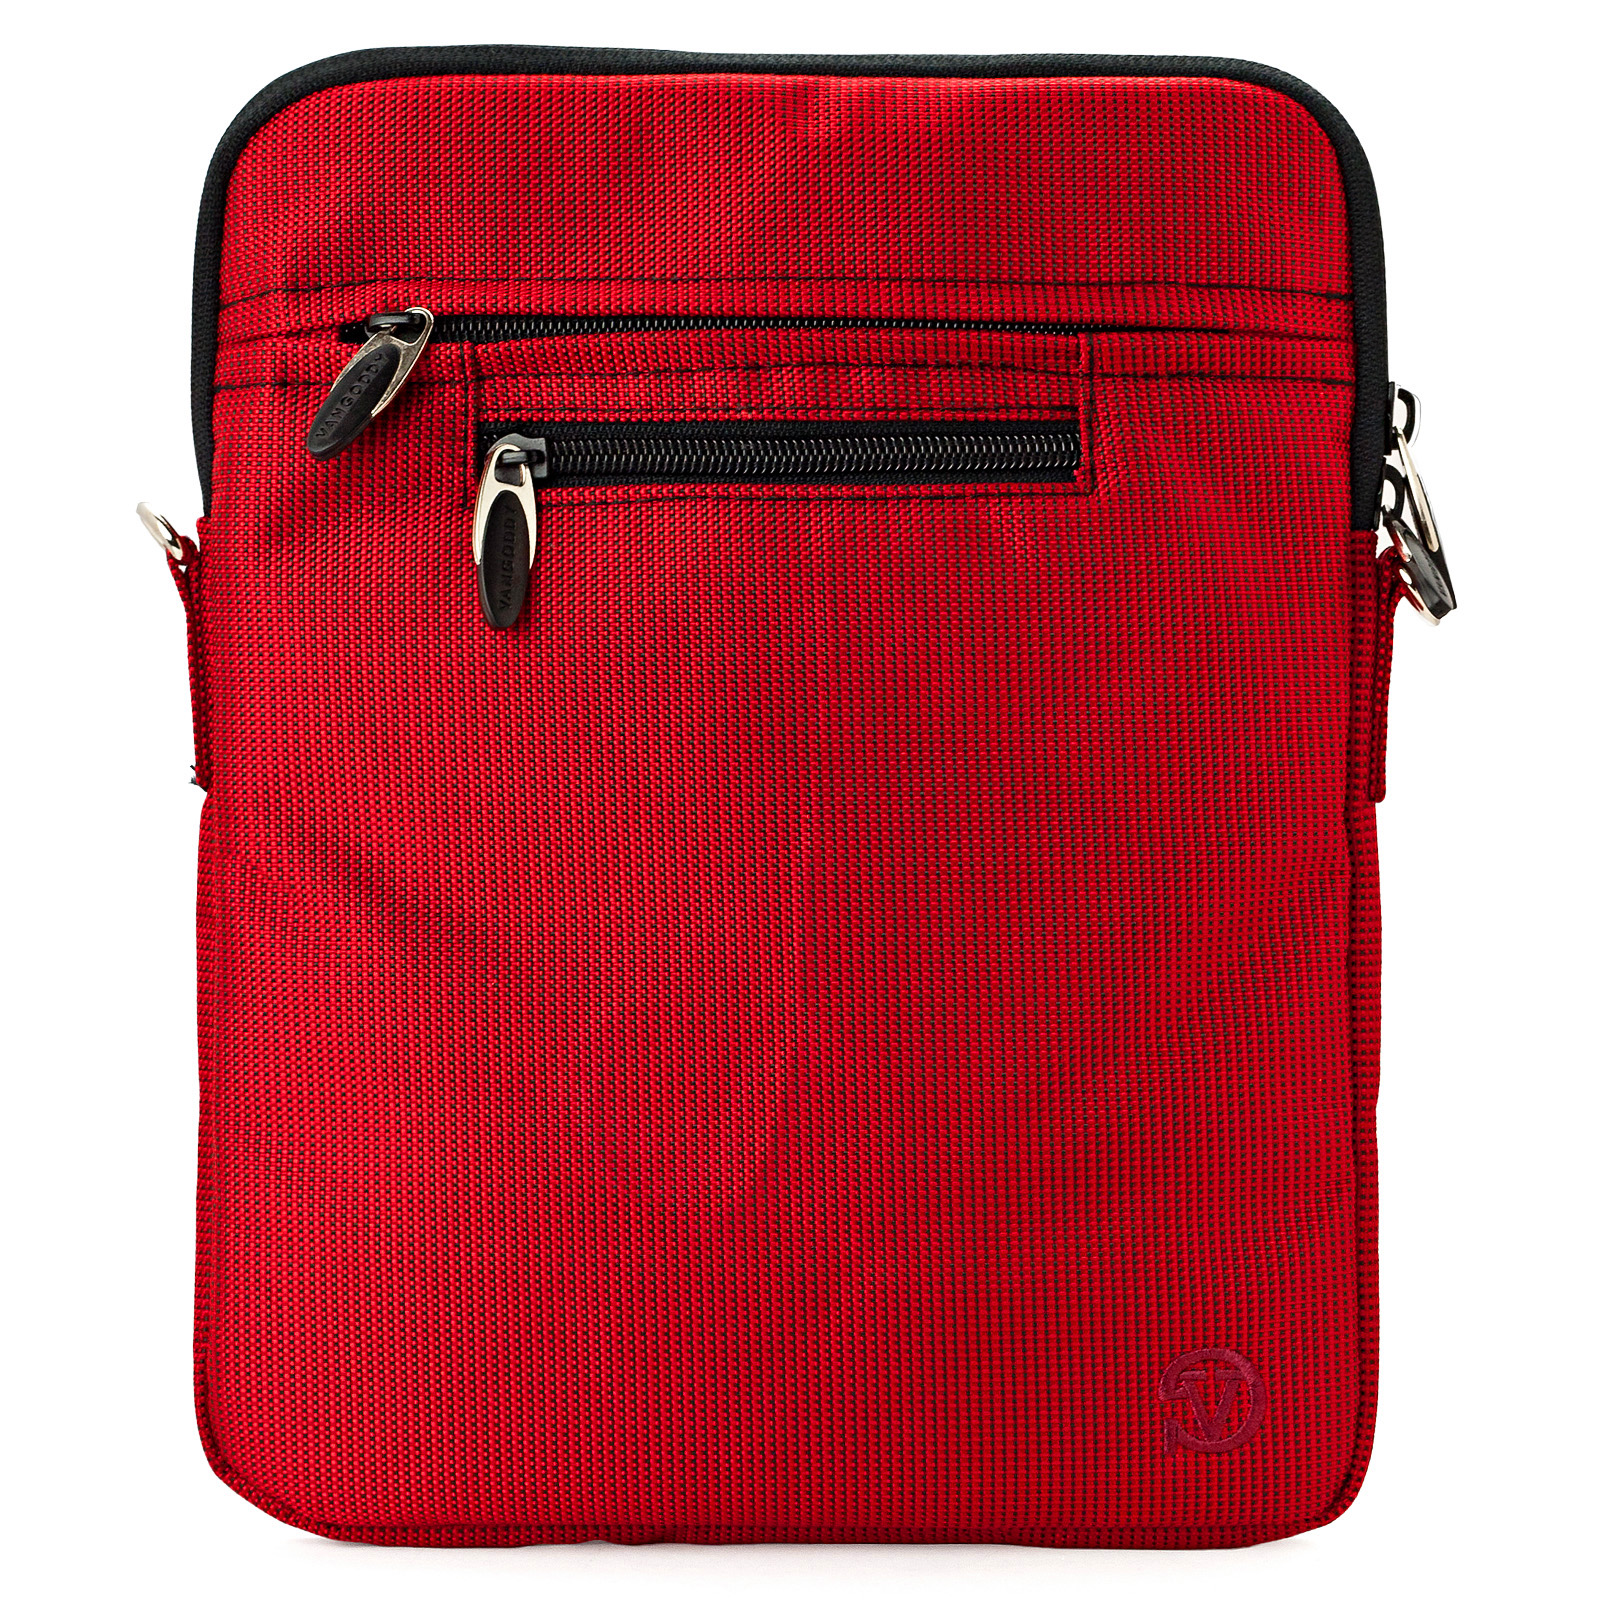 "Hydei Sleeve 10"" (Red)"